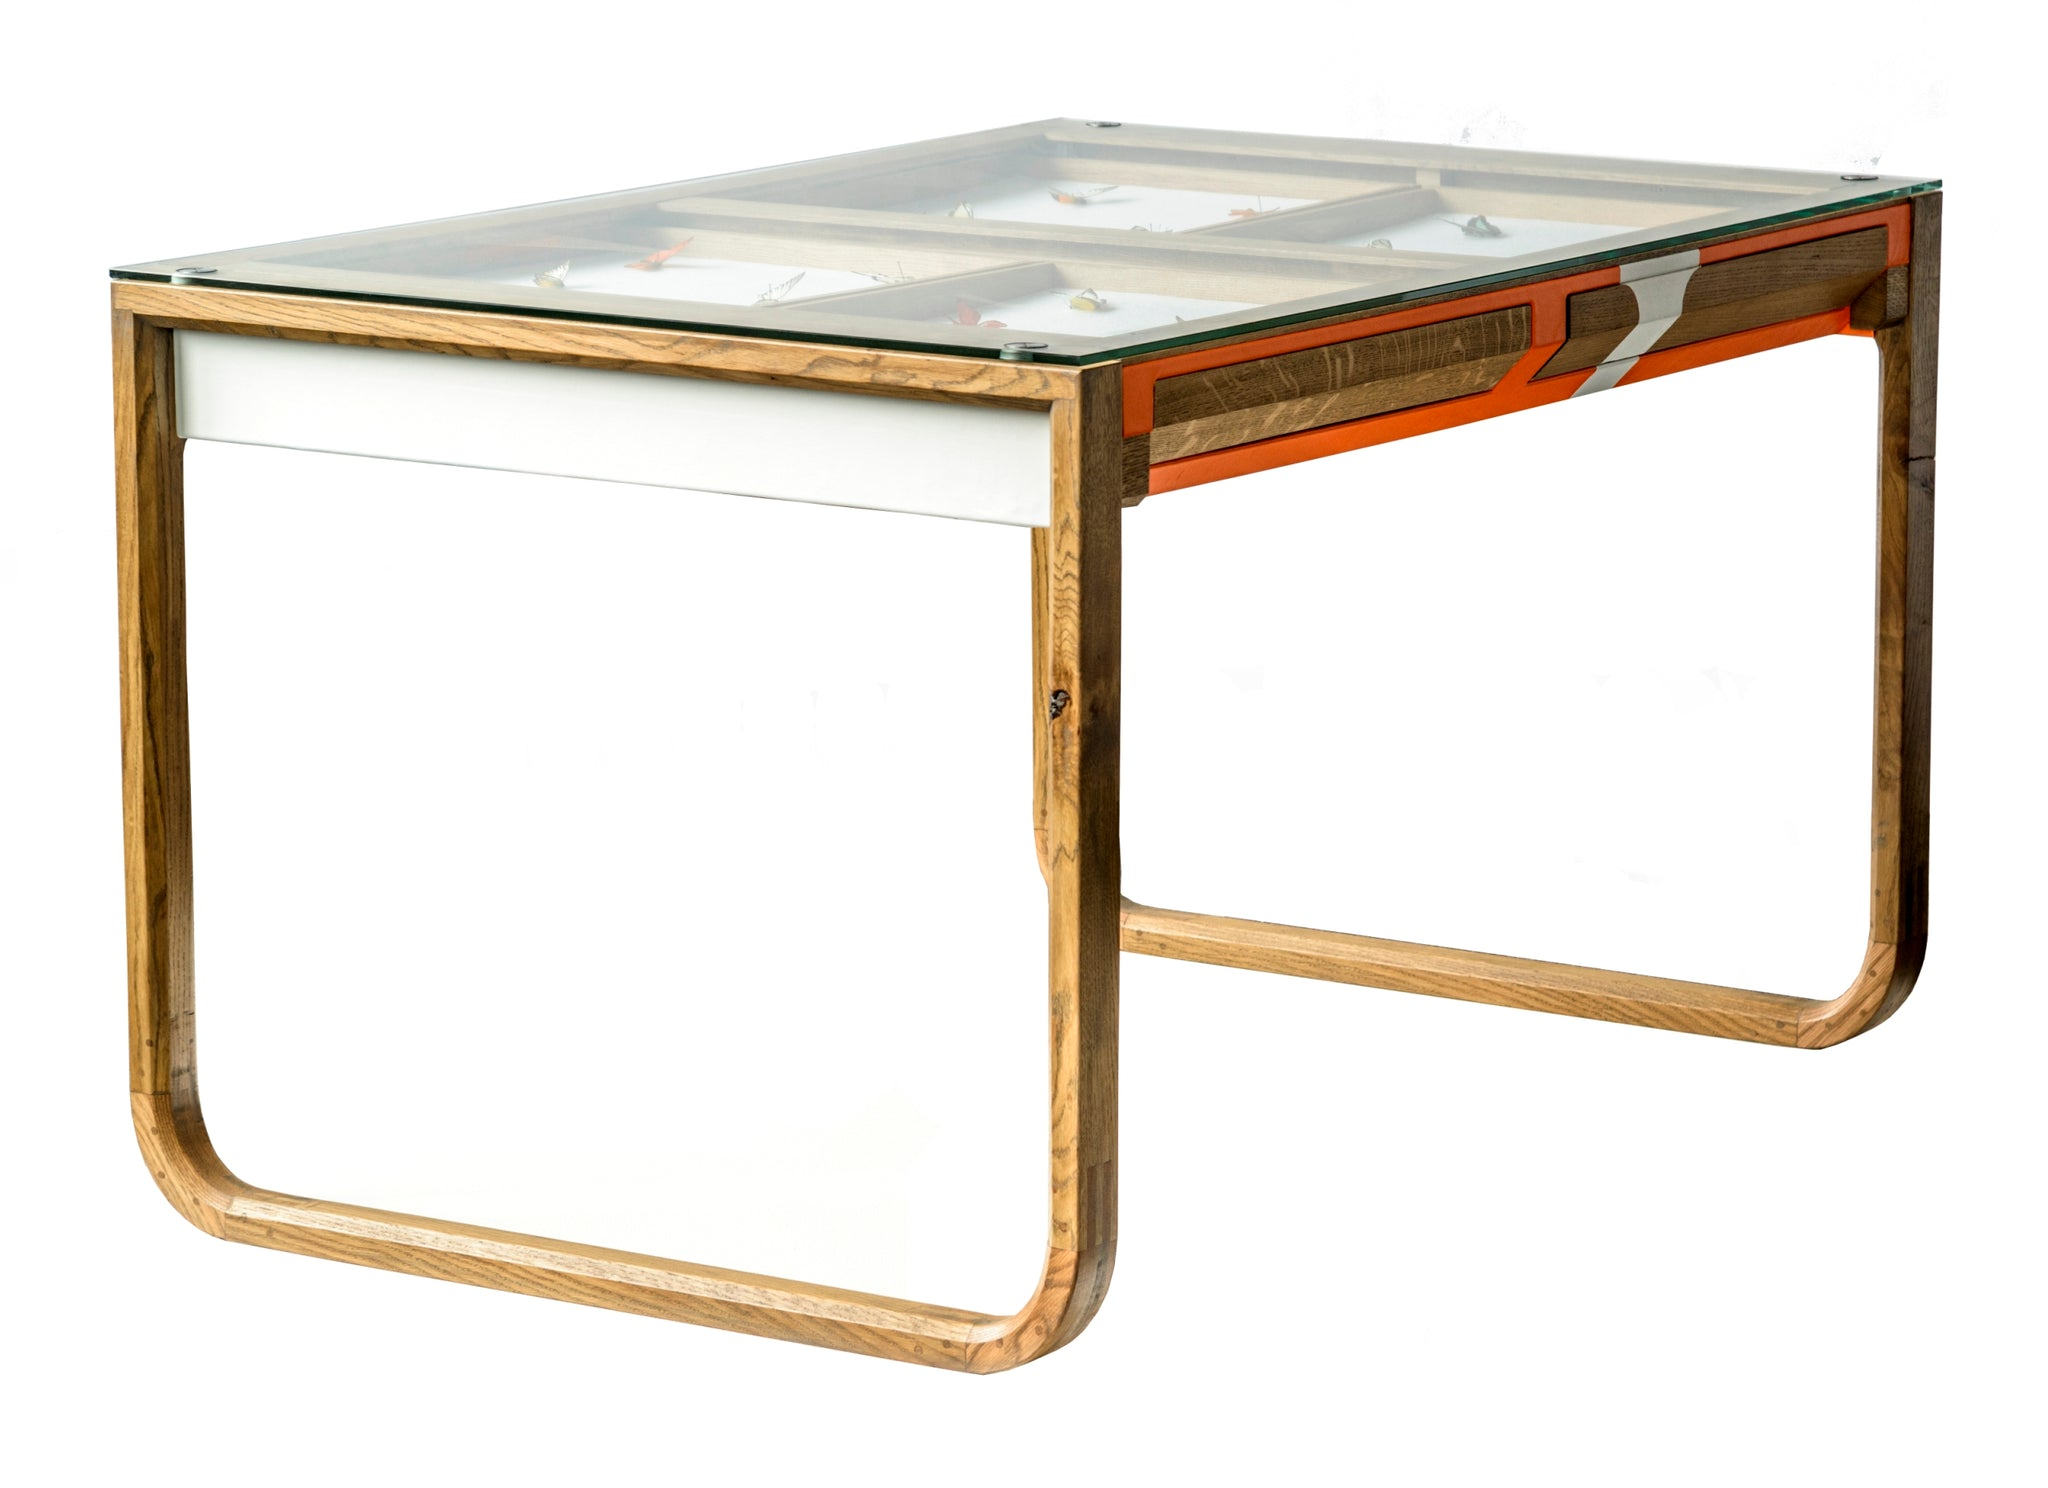 Designer dining table (Curatorial)